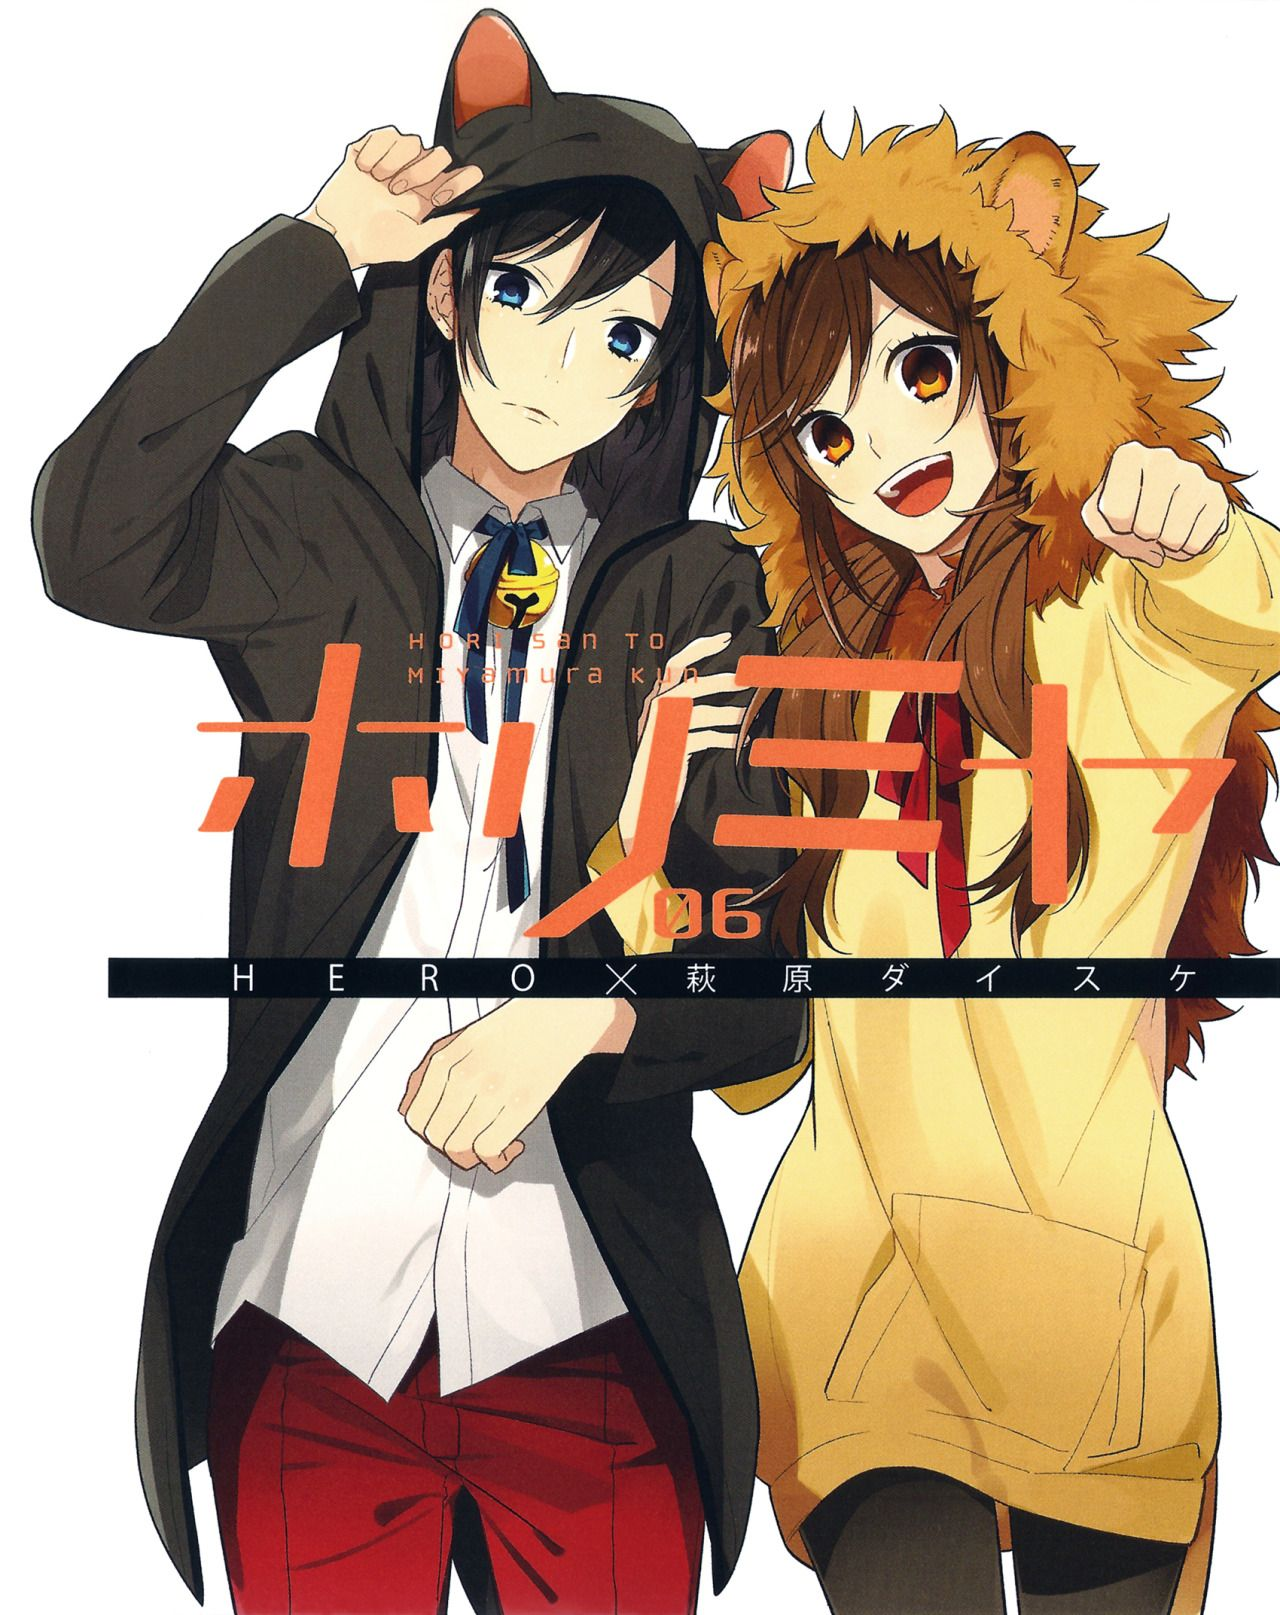 horimiya 6  Scanned the Horimiya Vol.6 LE cover and straps illustration so that ...